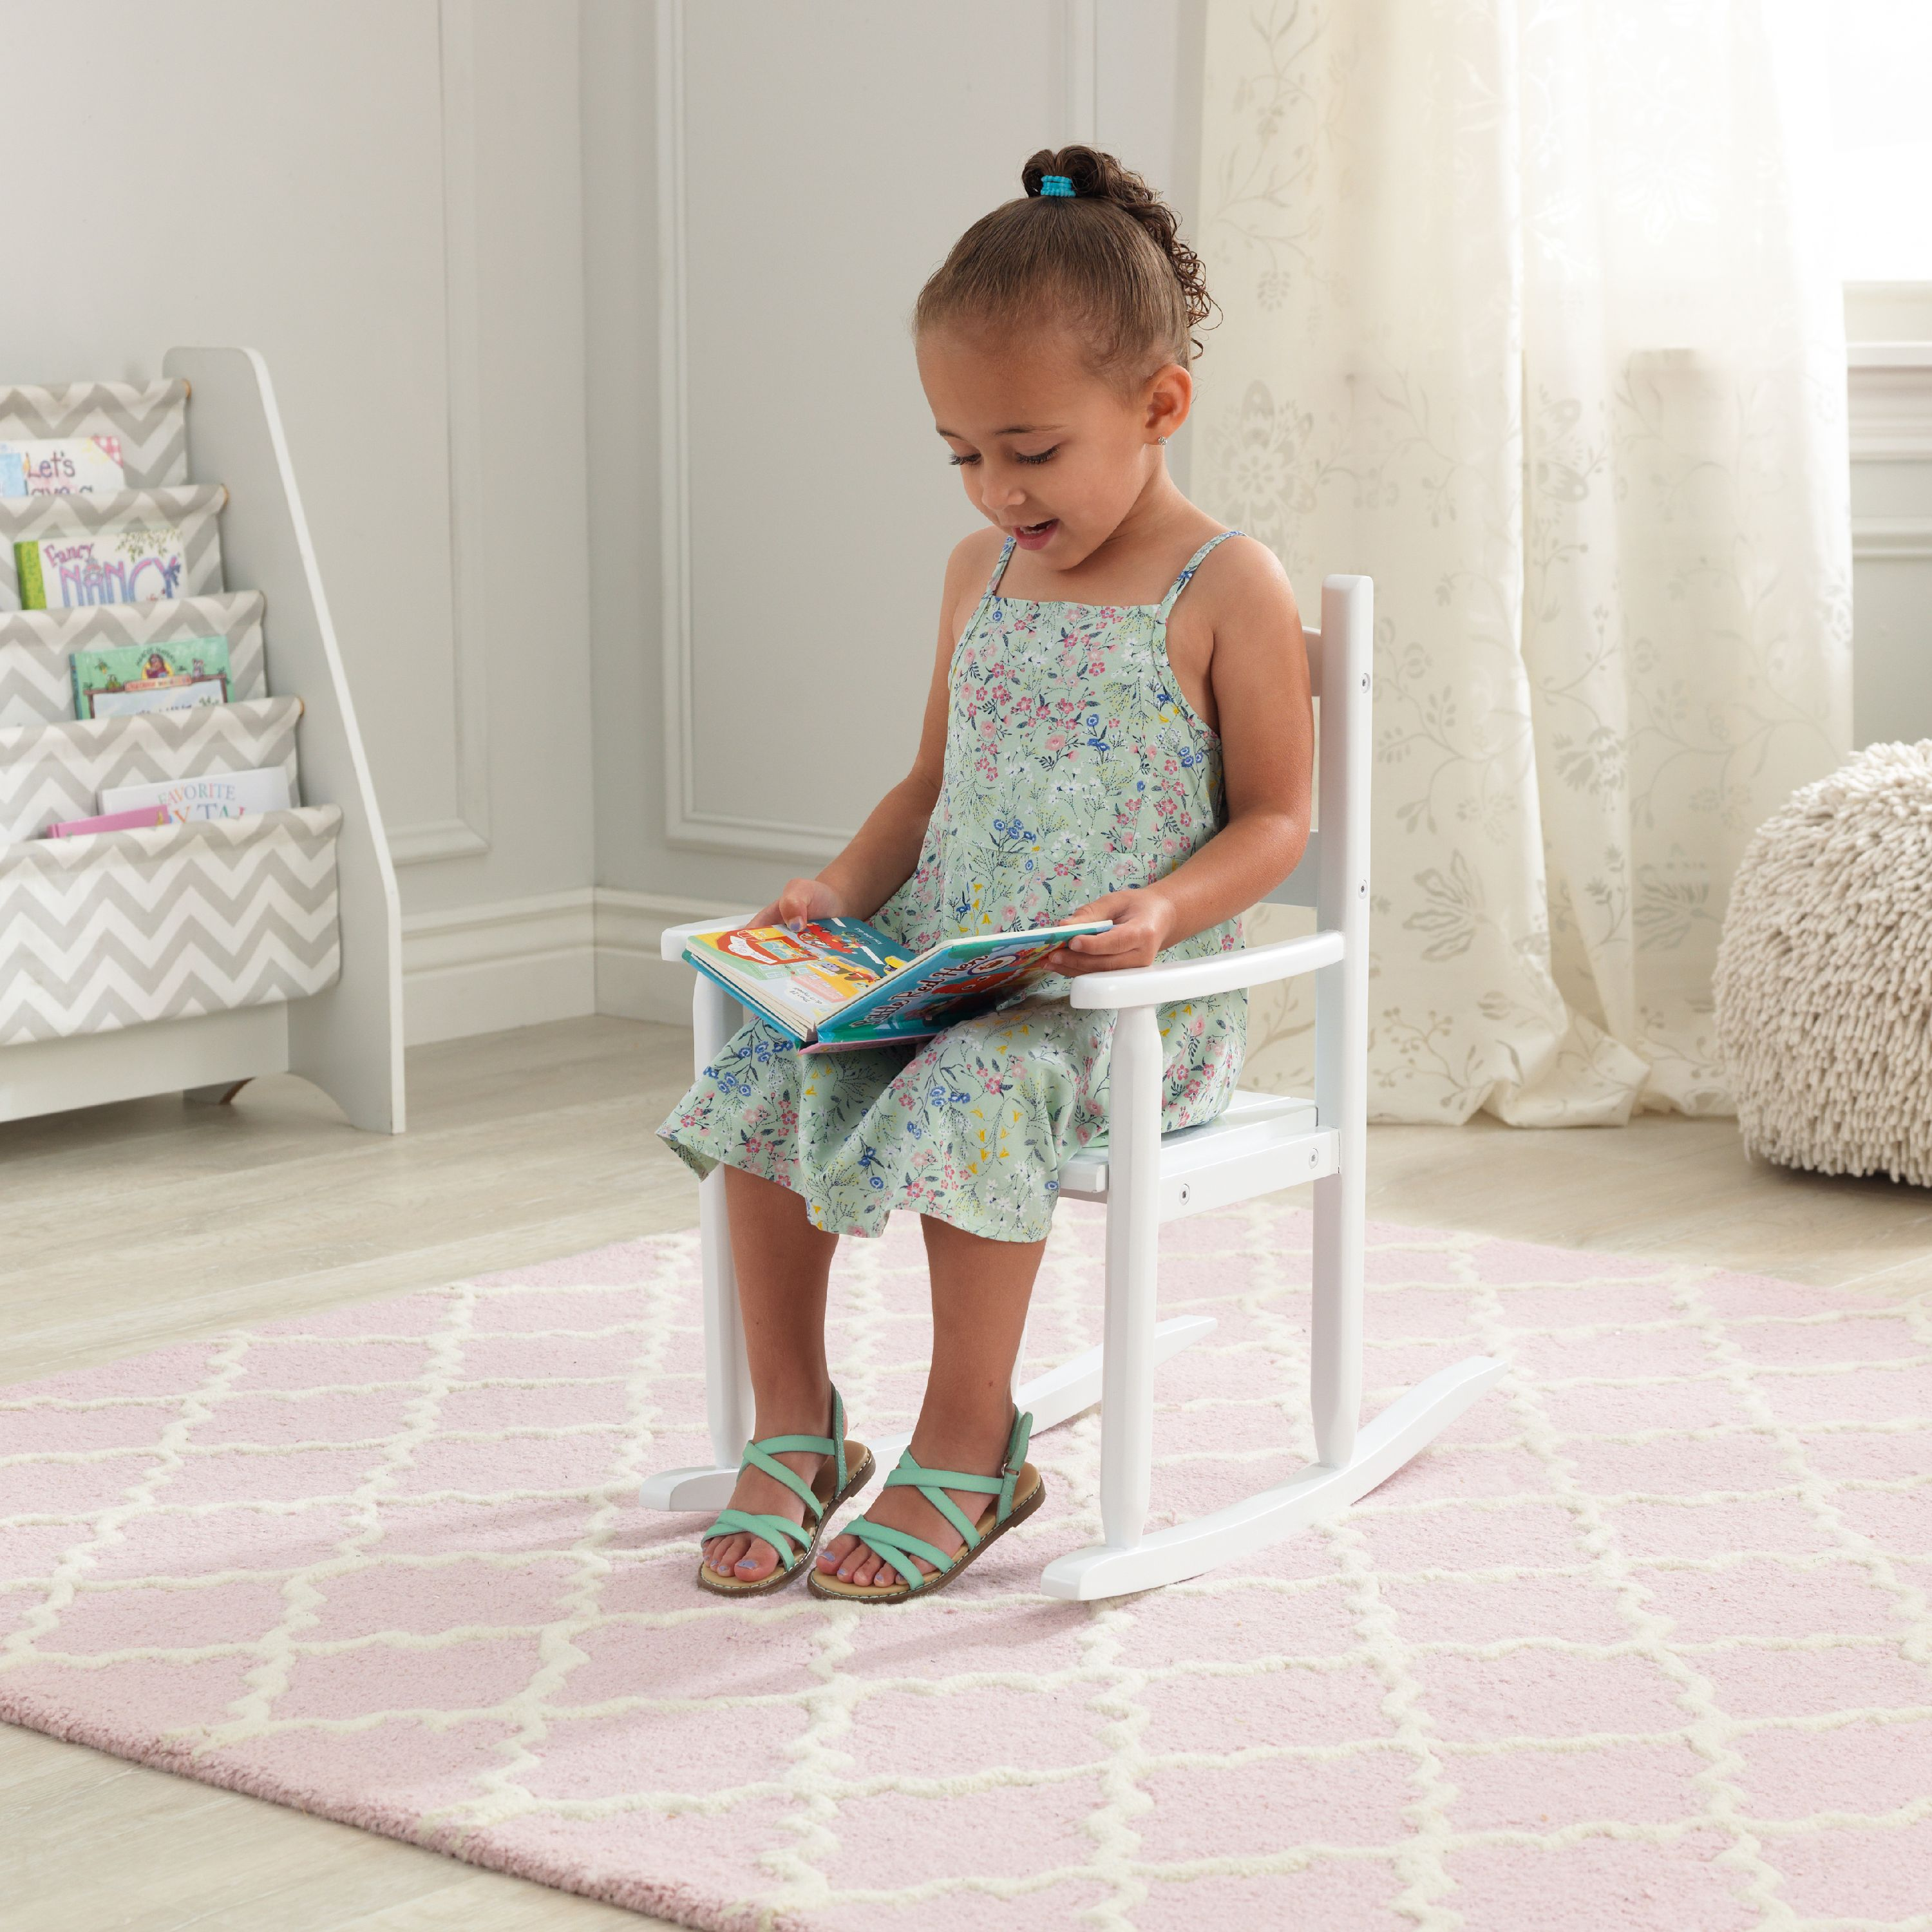 kids upholstered rocking chair pottery barn baby chairs walmart com product image kidkraft classic wooden white